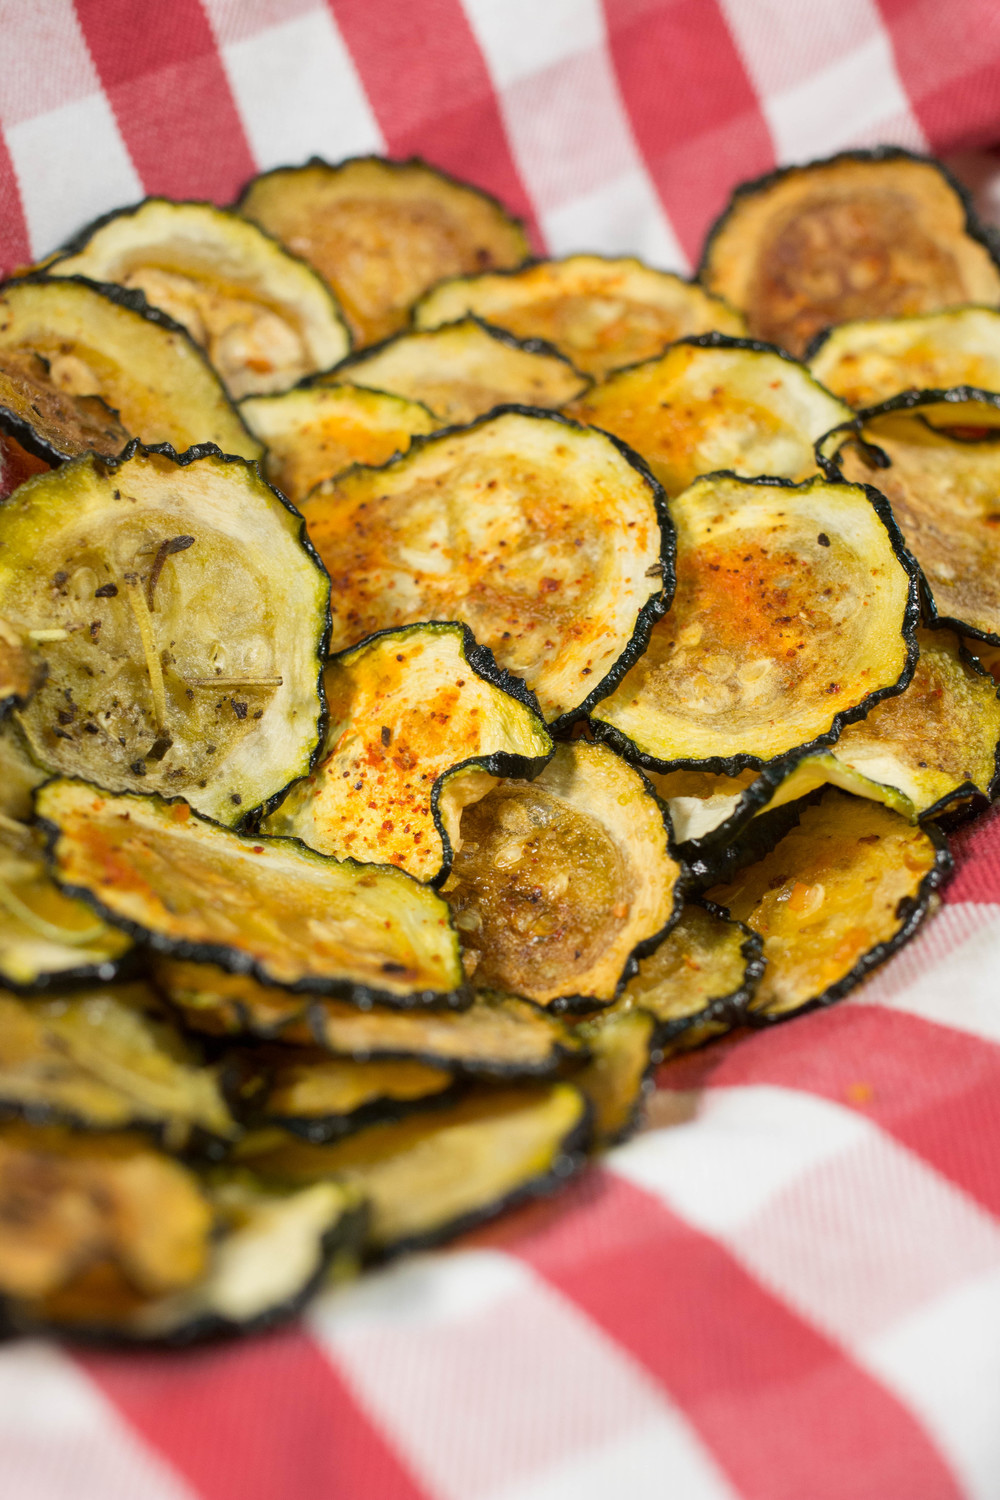 Baked Zucchini Recipes Healthy  Baked Zucchini Chips